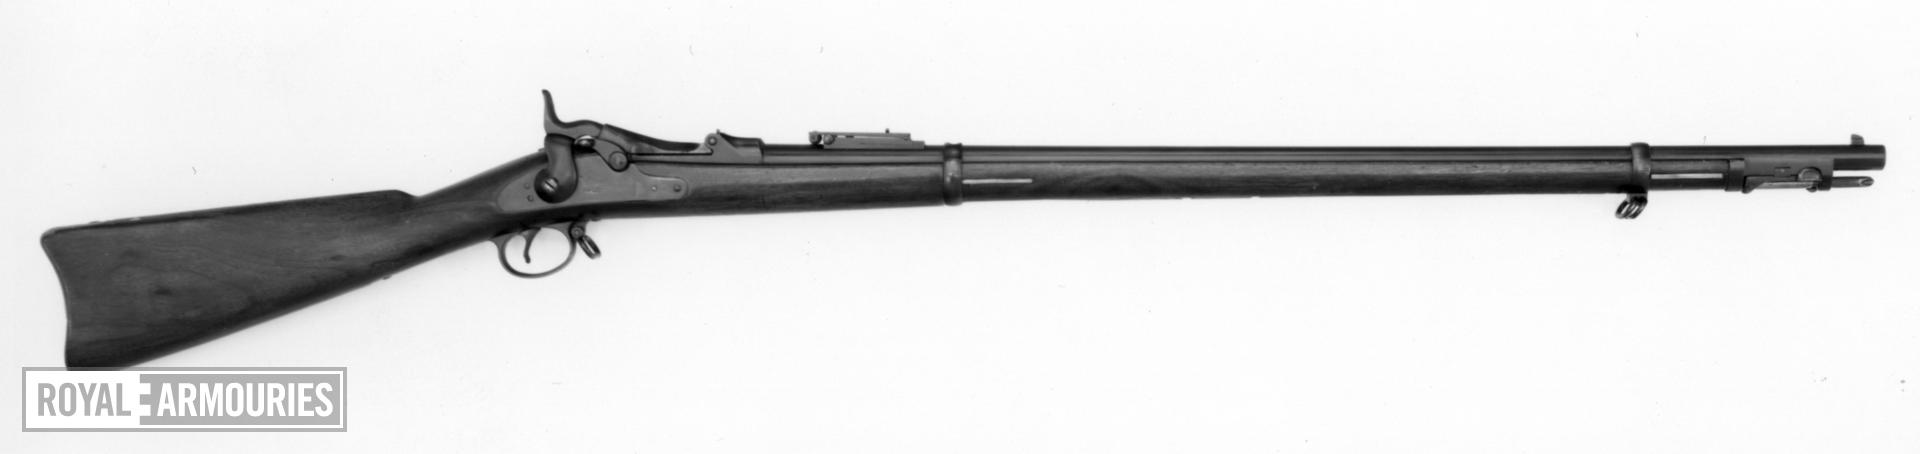 Centrefire breech-loading rifle - Springfield Model 1884 Model 1884 Springfield with rod bayonet Known as the trapdoor Springfield